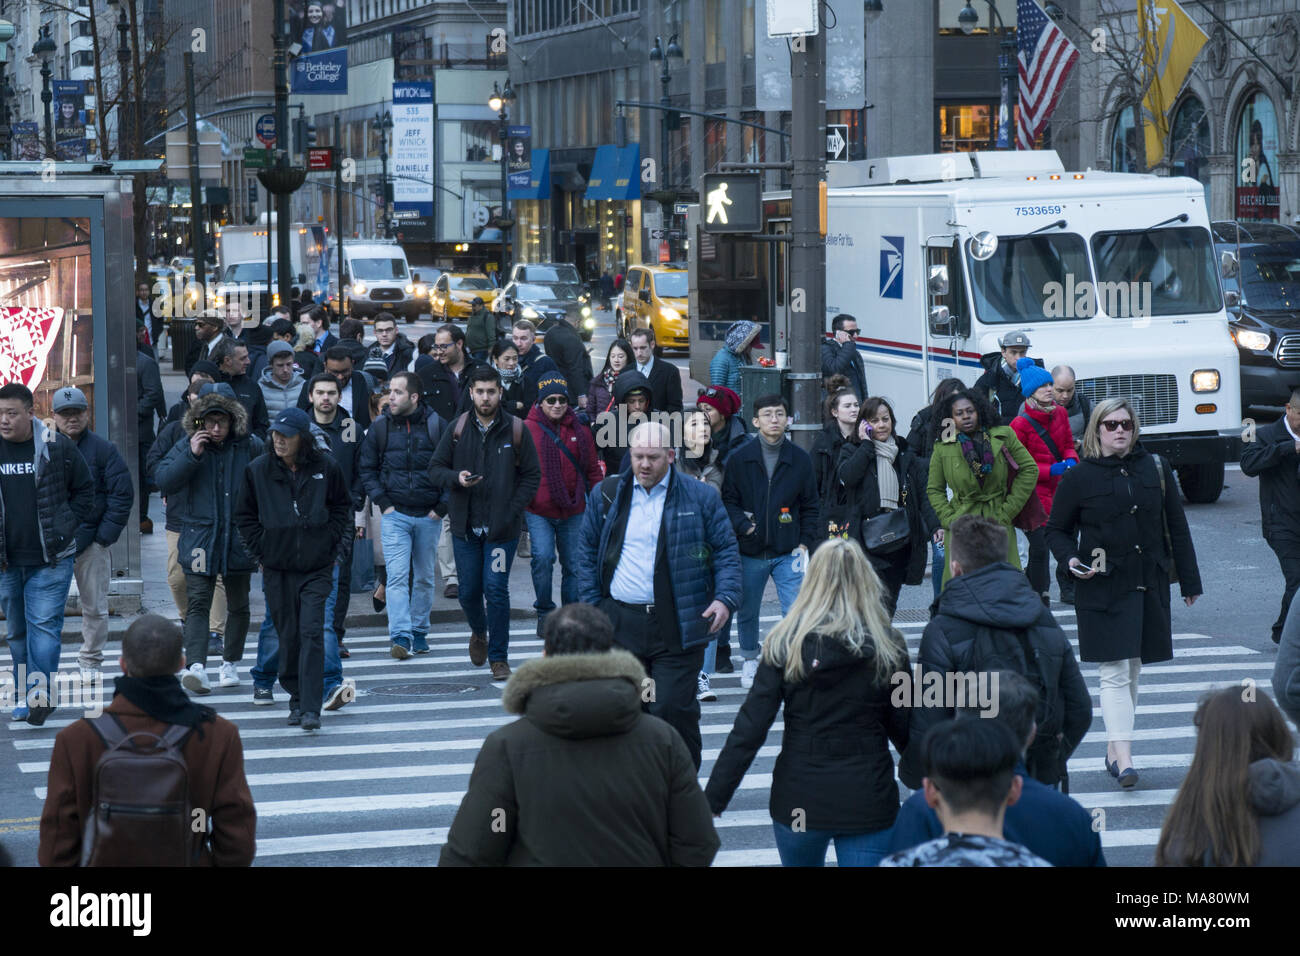 Pedestrians in the crosswalk at the always busy corner of 5th Avenue and 42nd Street in midtown Manhattan, NYC. - Stock Image